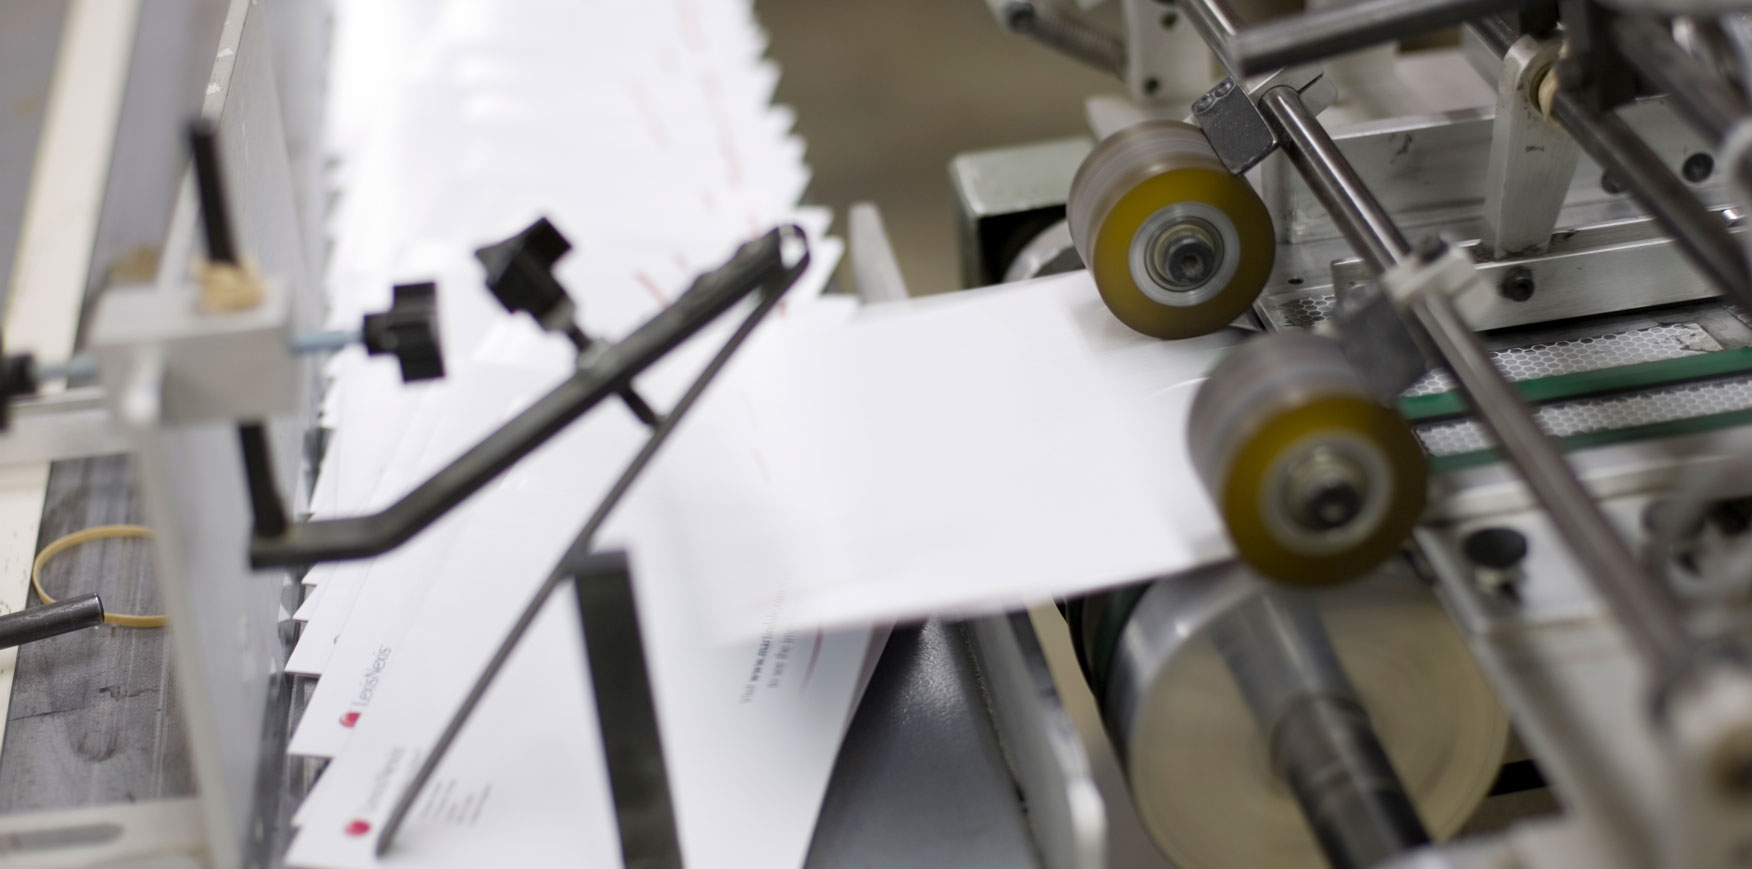 kitting and fulfillment services